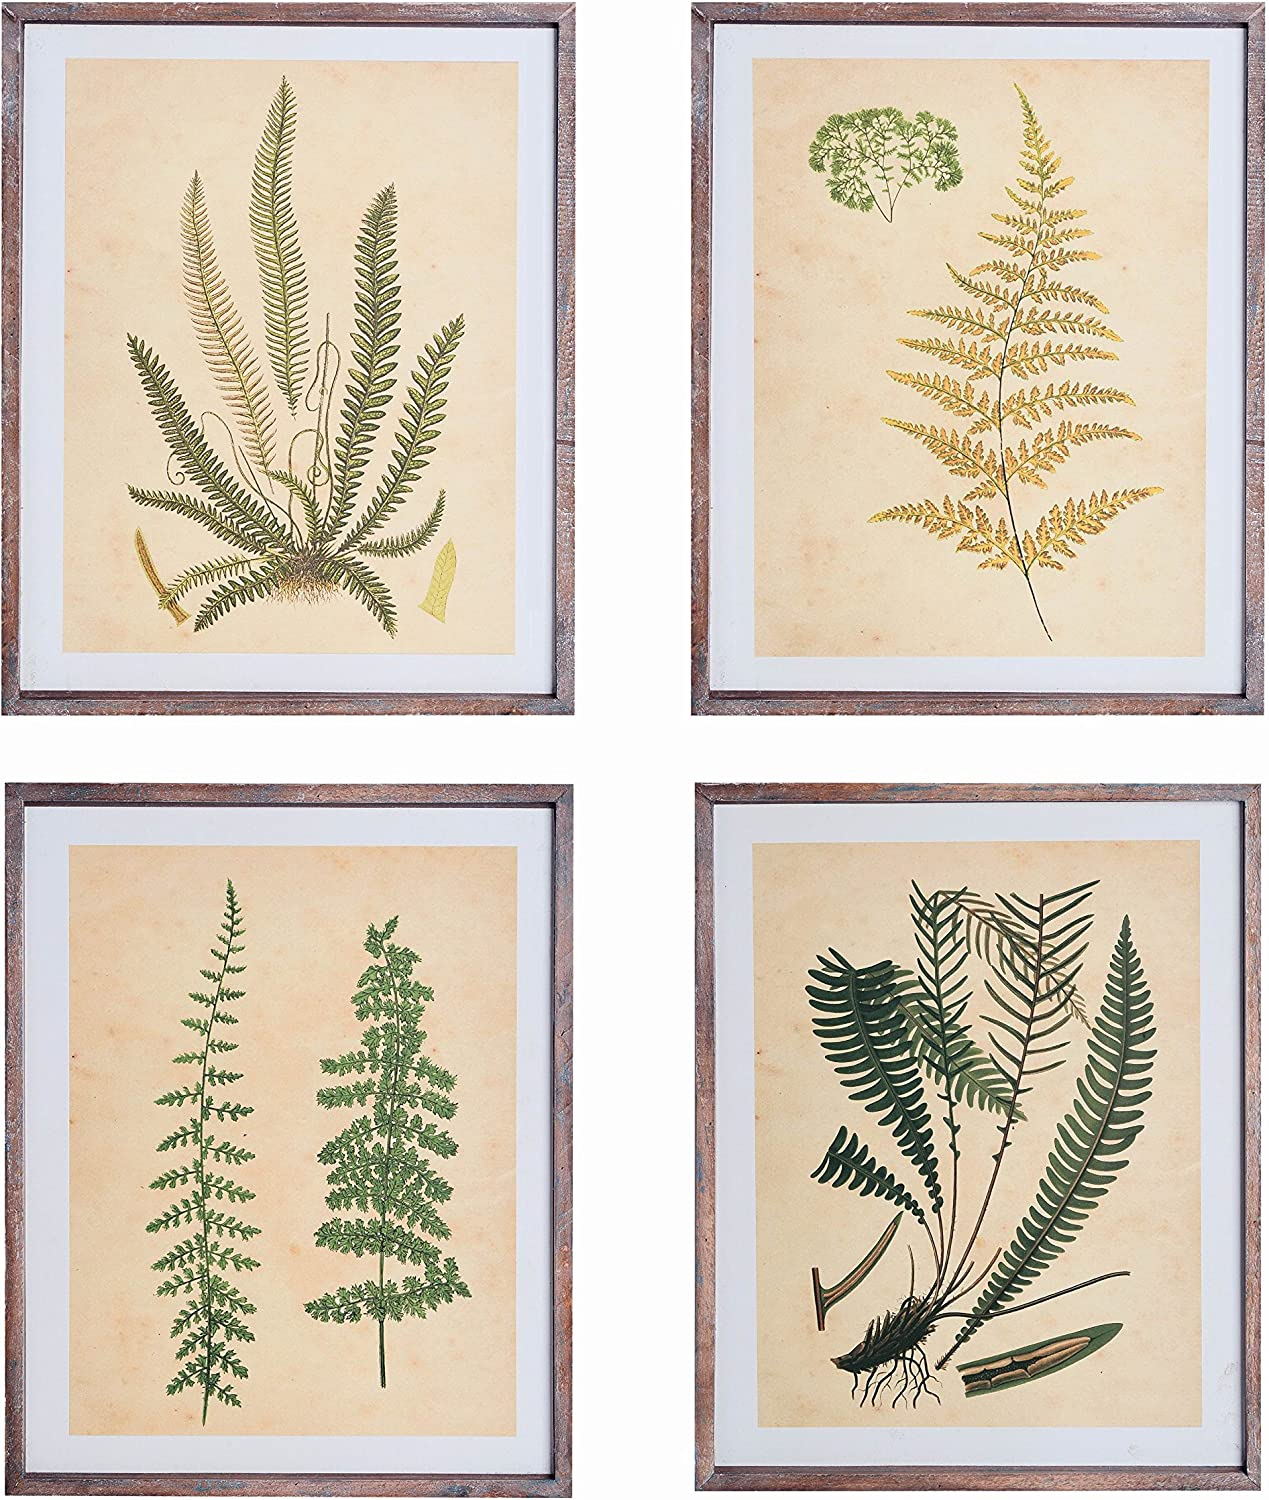 "NIKKY HOME 11"" x 14"" Vintage Wood Framed Botanical Wall Art Prints Set of 4"